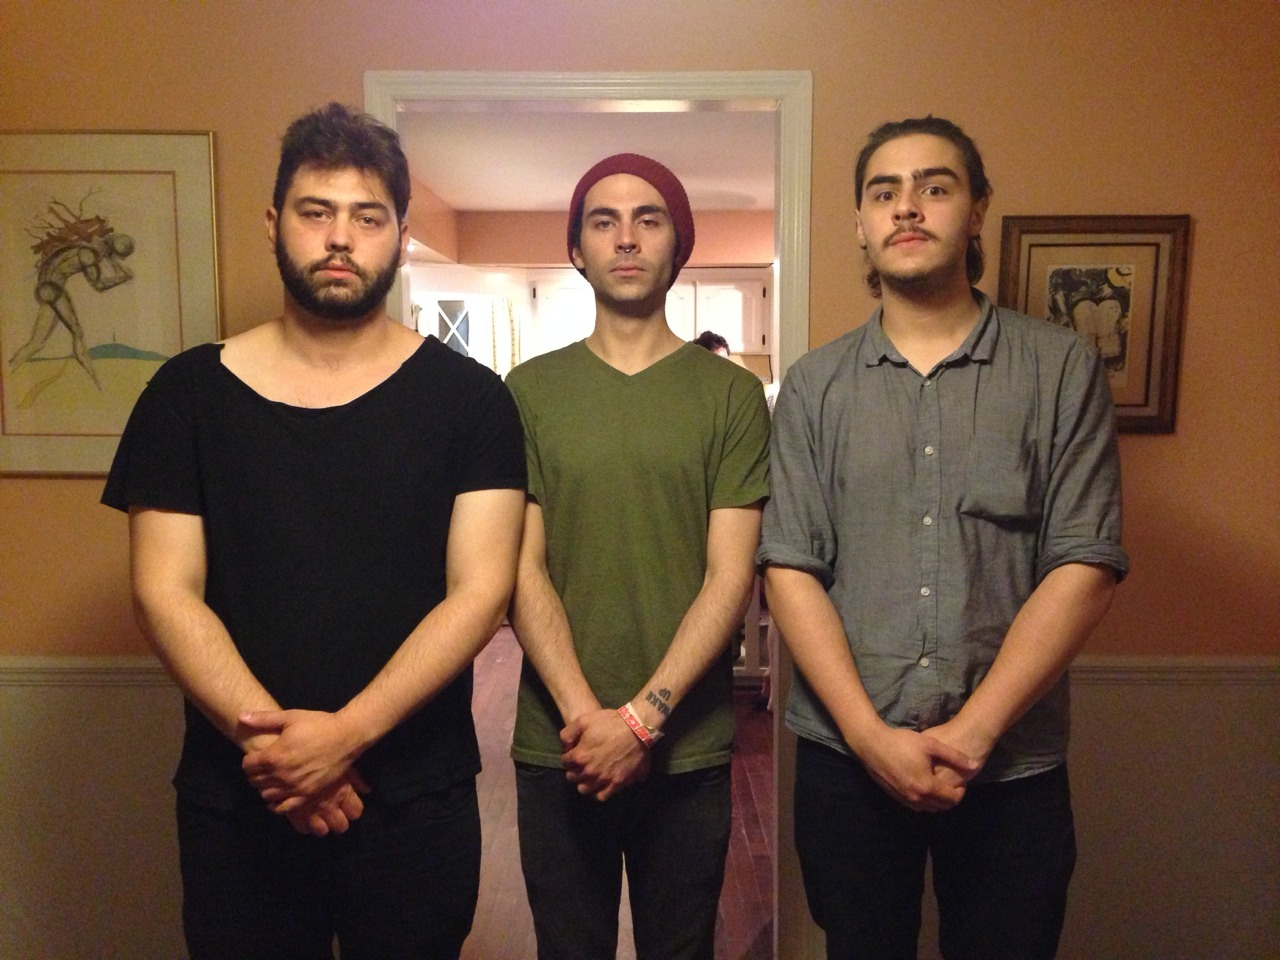 Three brothers together for one last night in the house they grew up in.